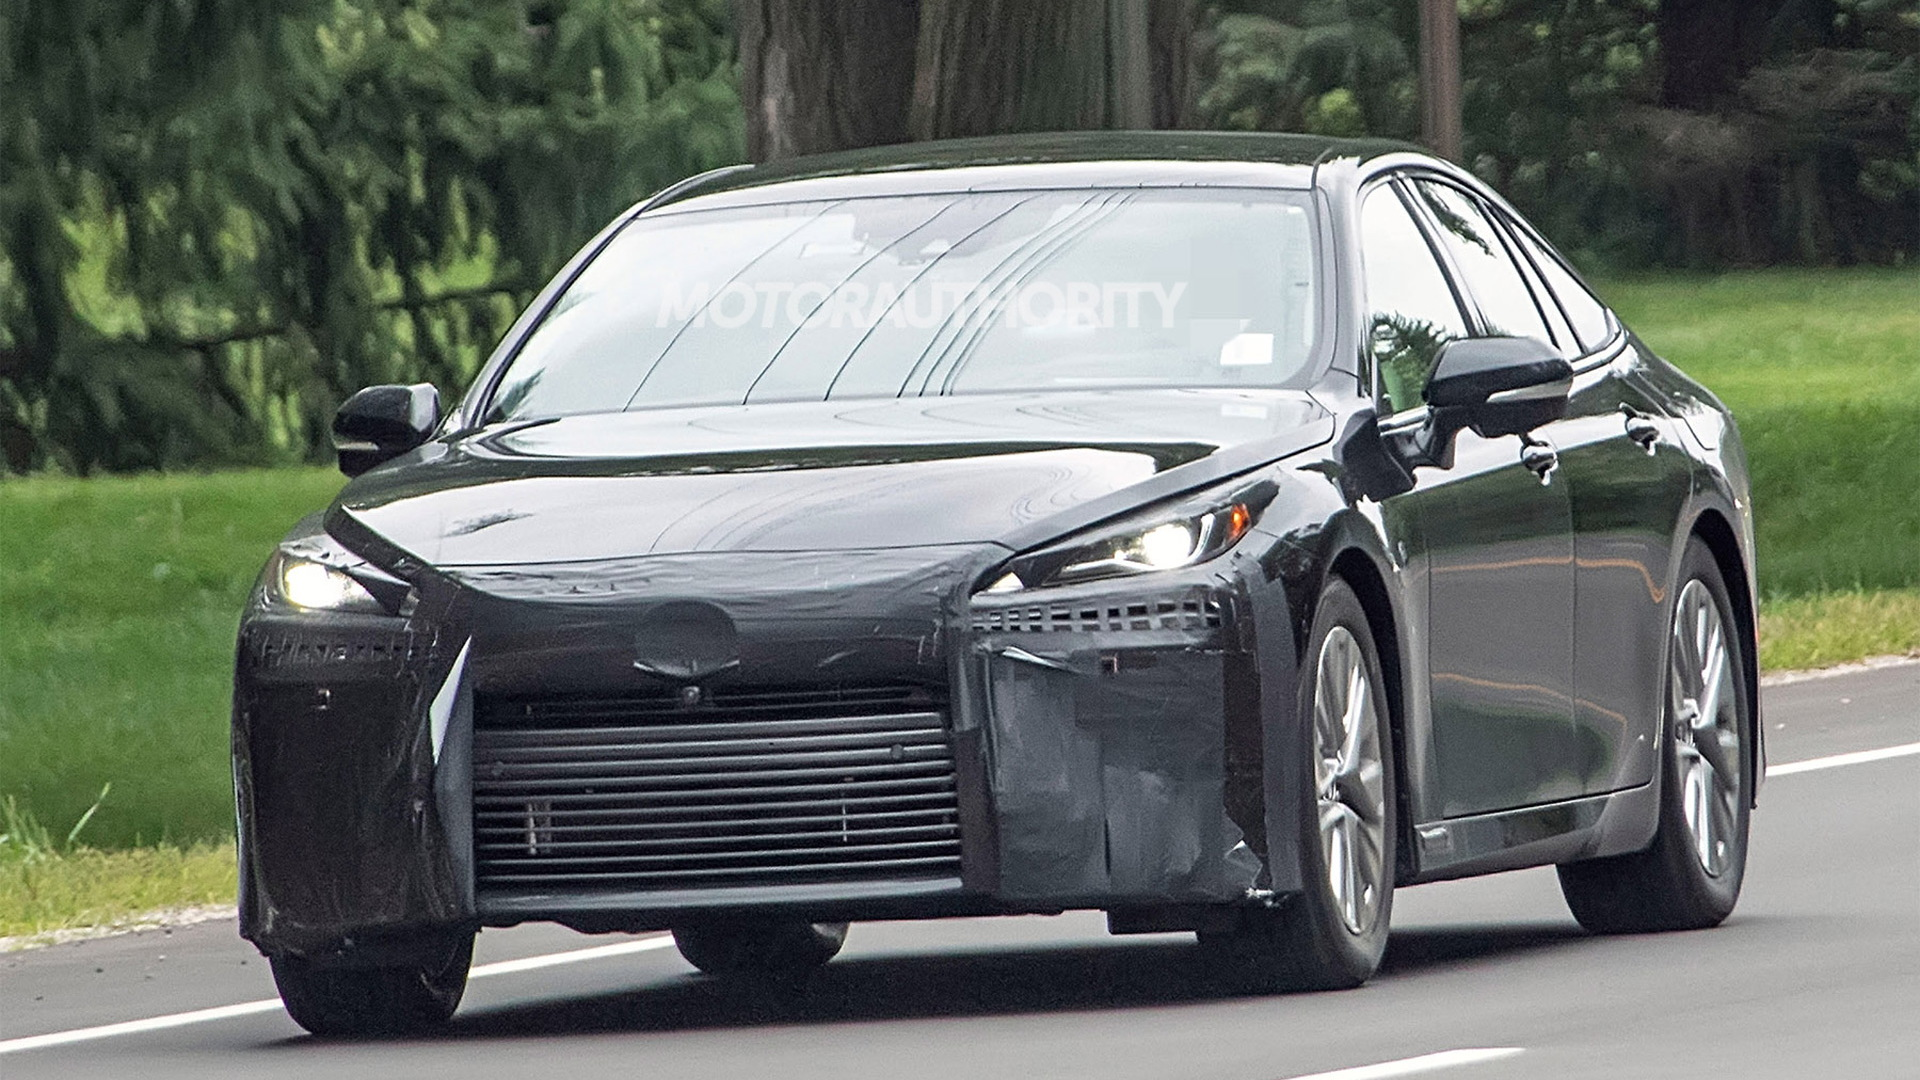 2021 丰田汽车 Mirai spy shots - Photo credit: S. Baldauf/SB-Medien